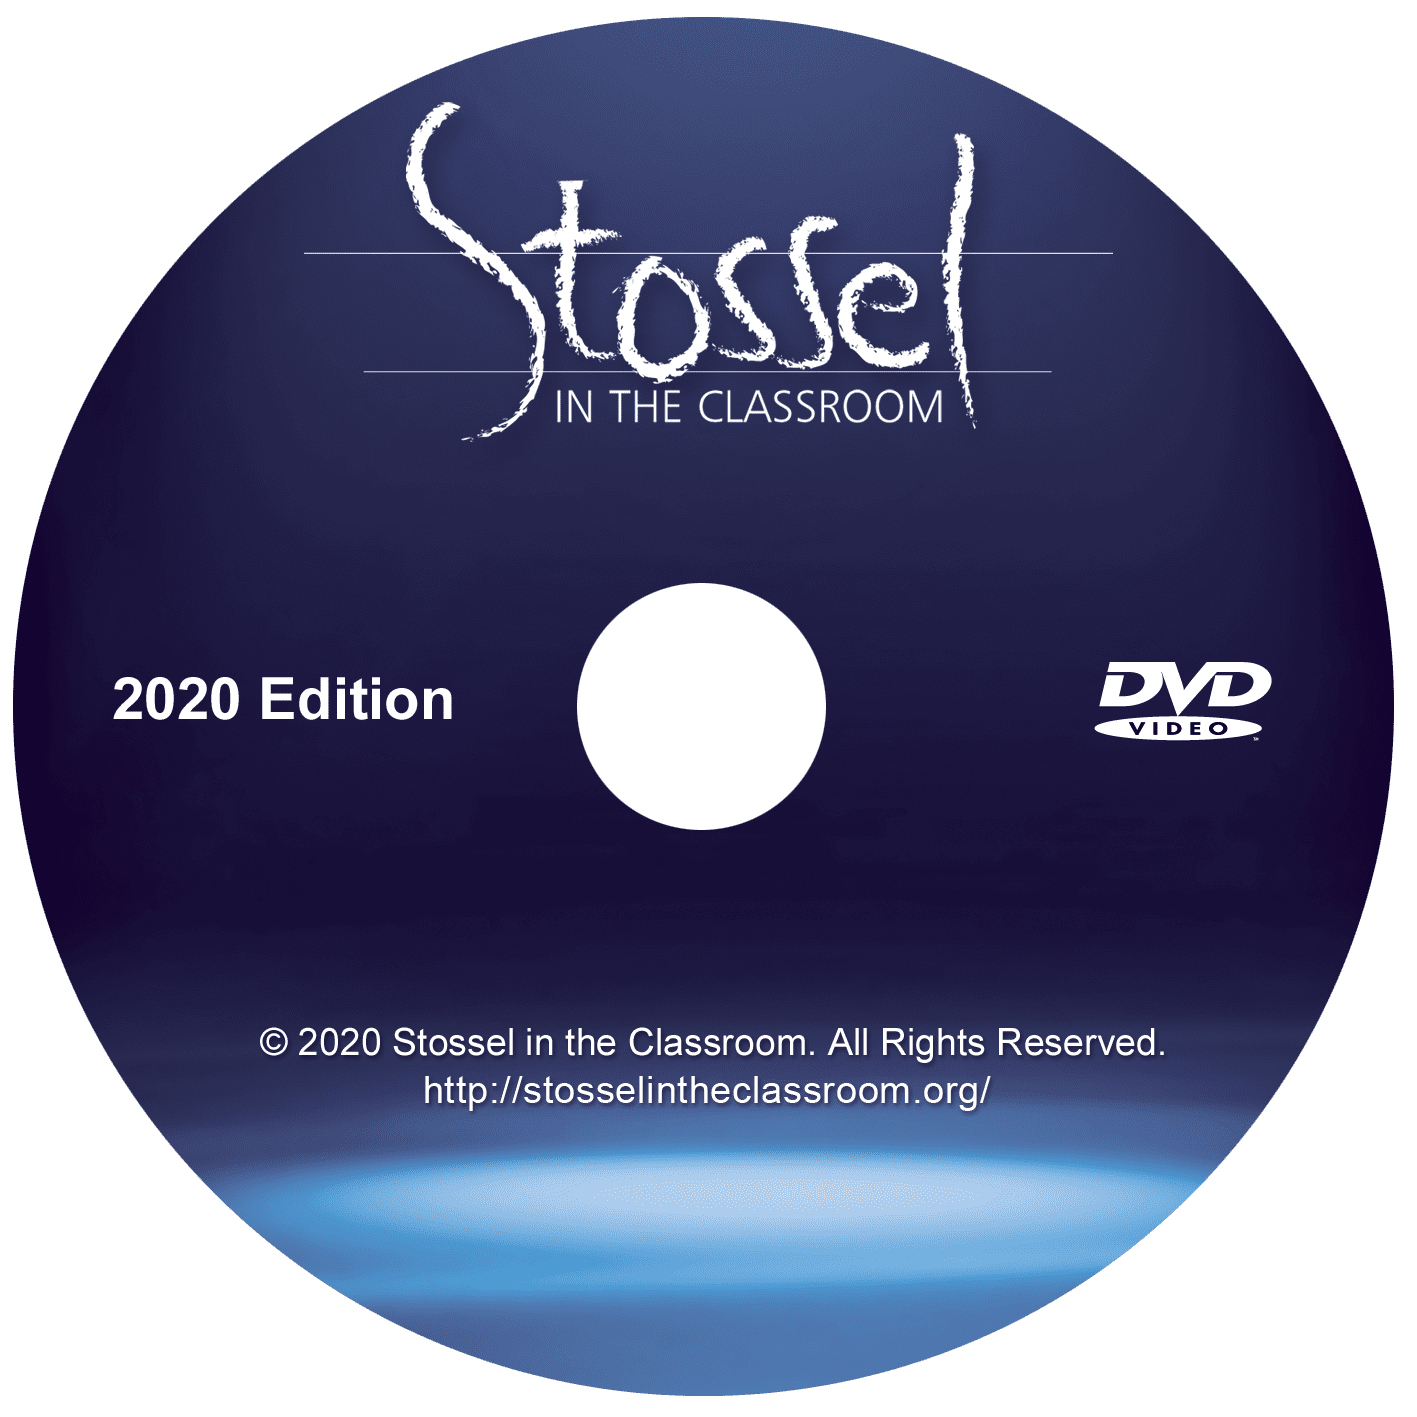 Stossel in the Classroom – 2020 Edition